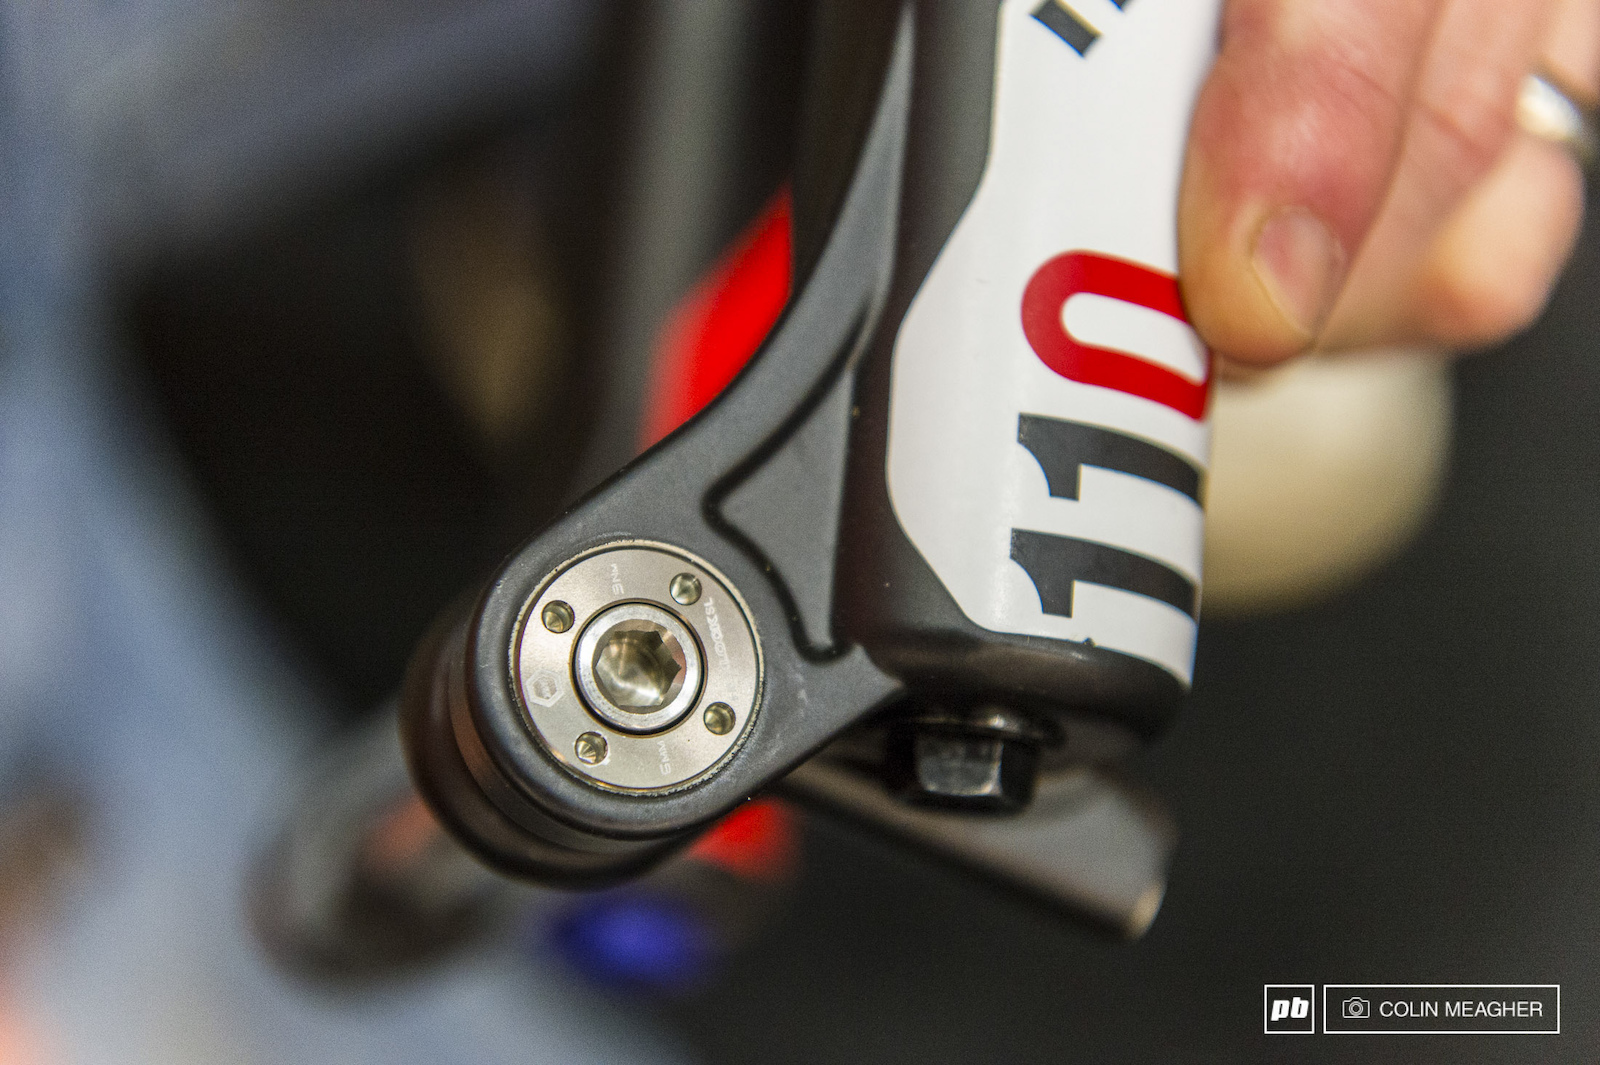 Manitou is offering a new tool front axle option for their trail forks. More info on what fork(s) later. Manitou's 15mm Hex Lock system works just fine but some riders and mechanics find that they prefer a tool option. Manitou listened and delivered.